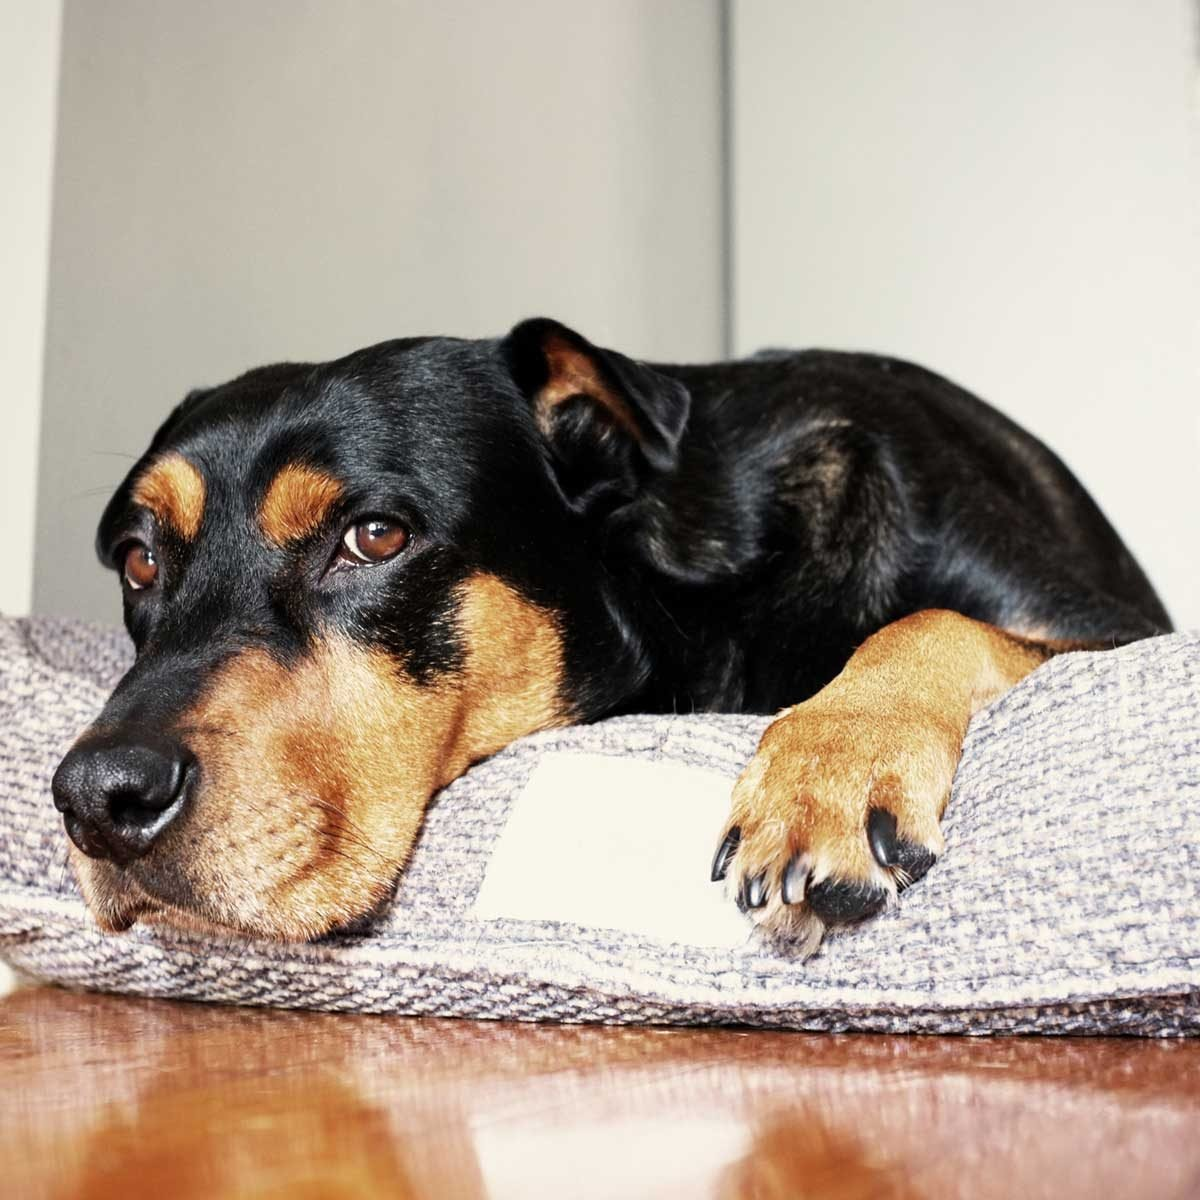 Dog Bed Gettyimages 520433124